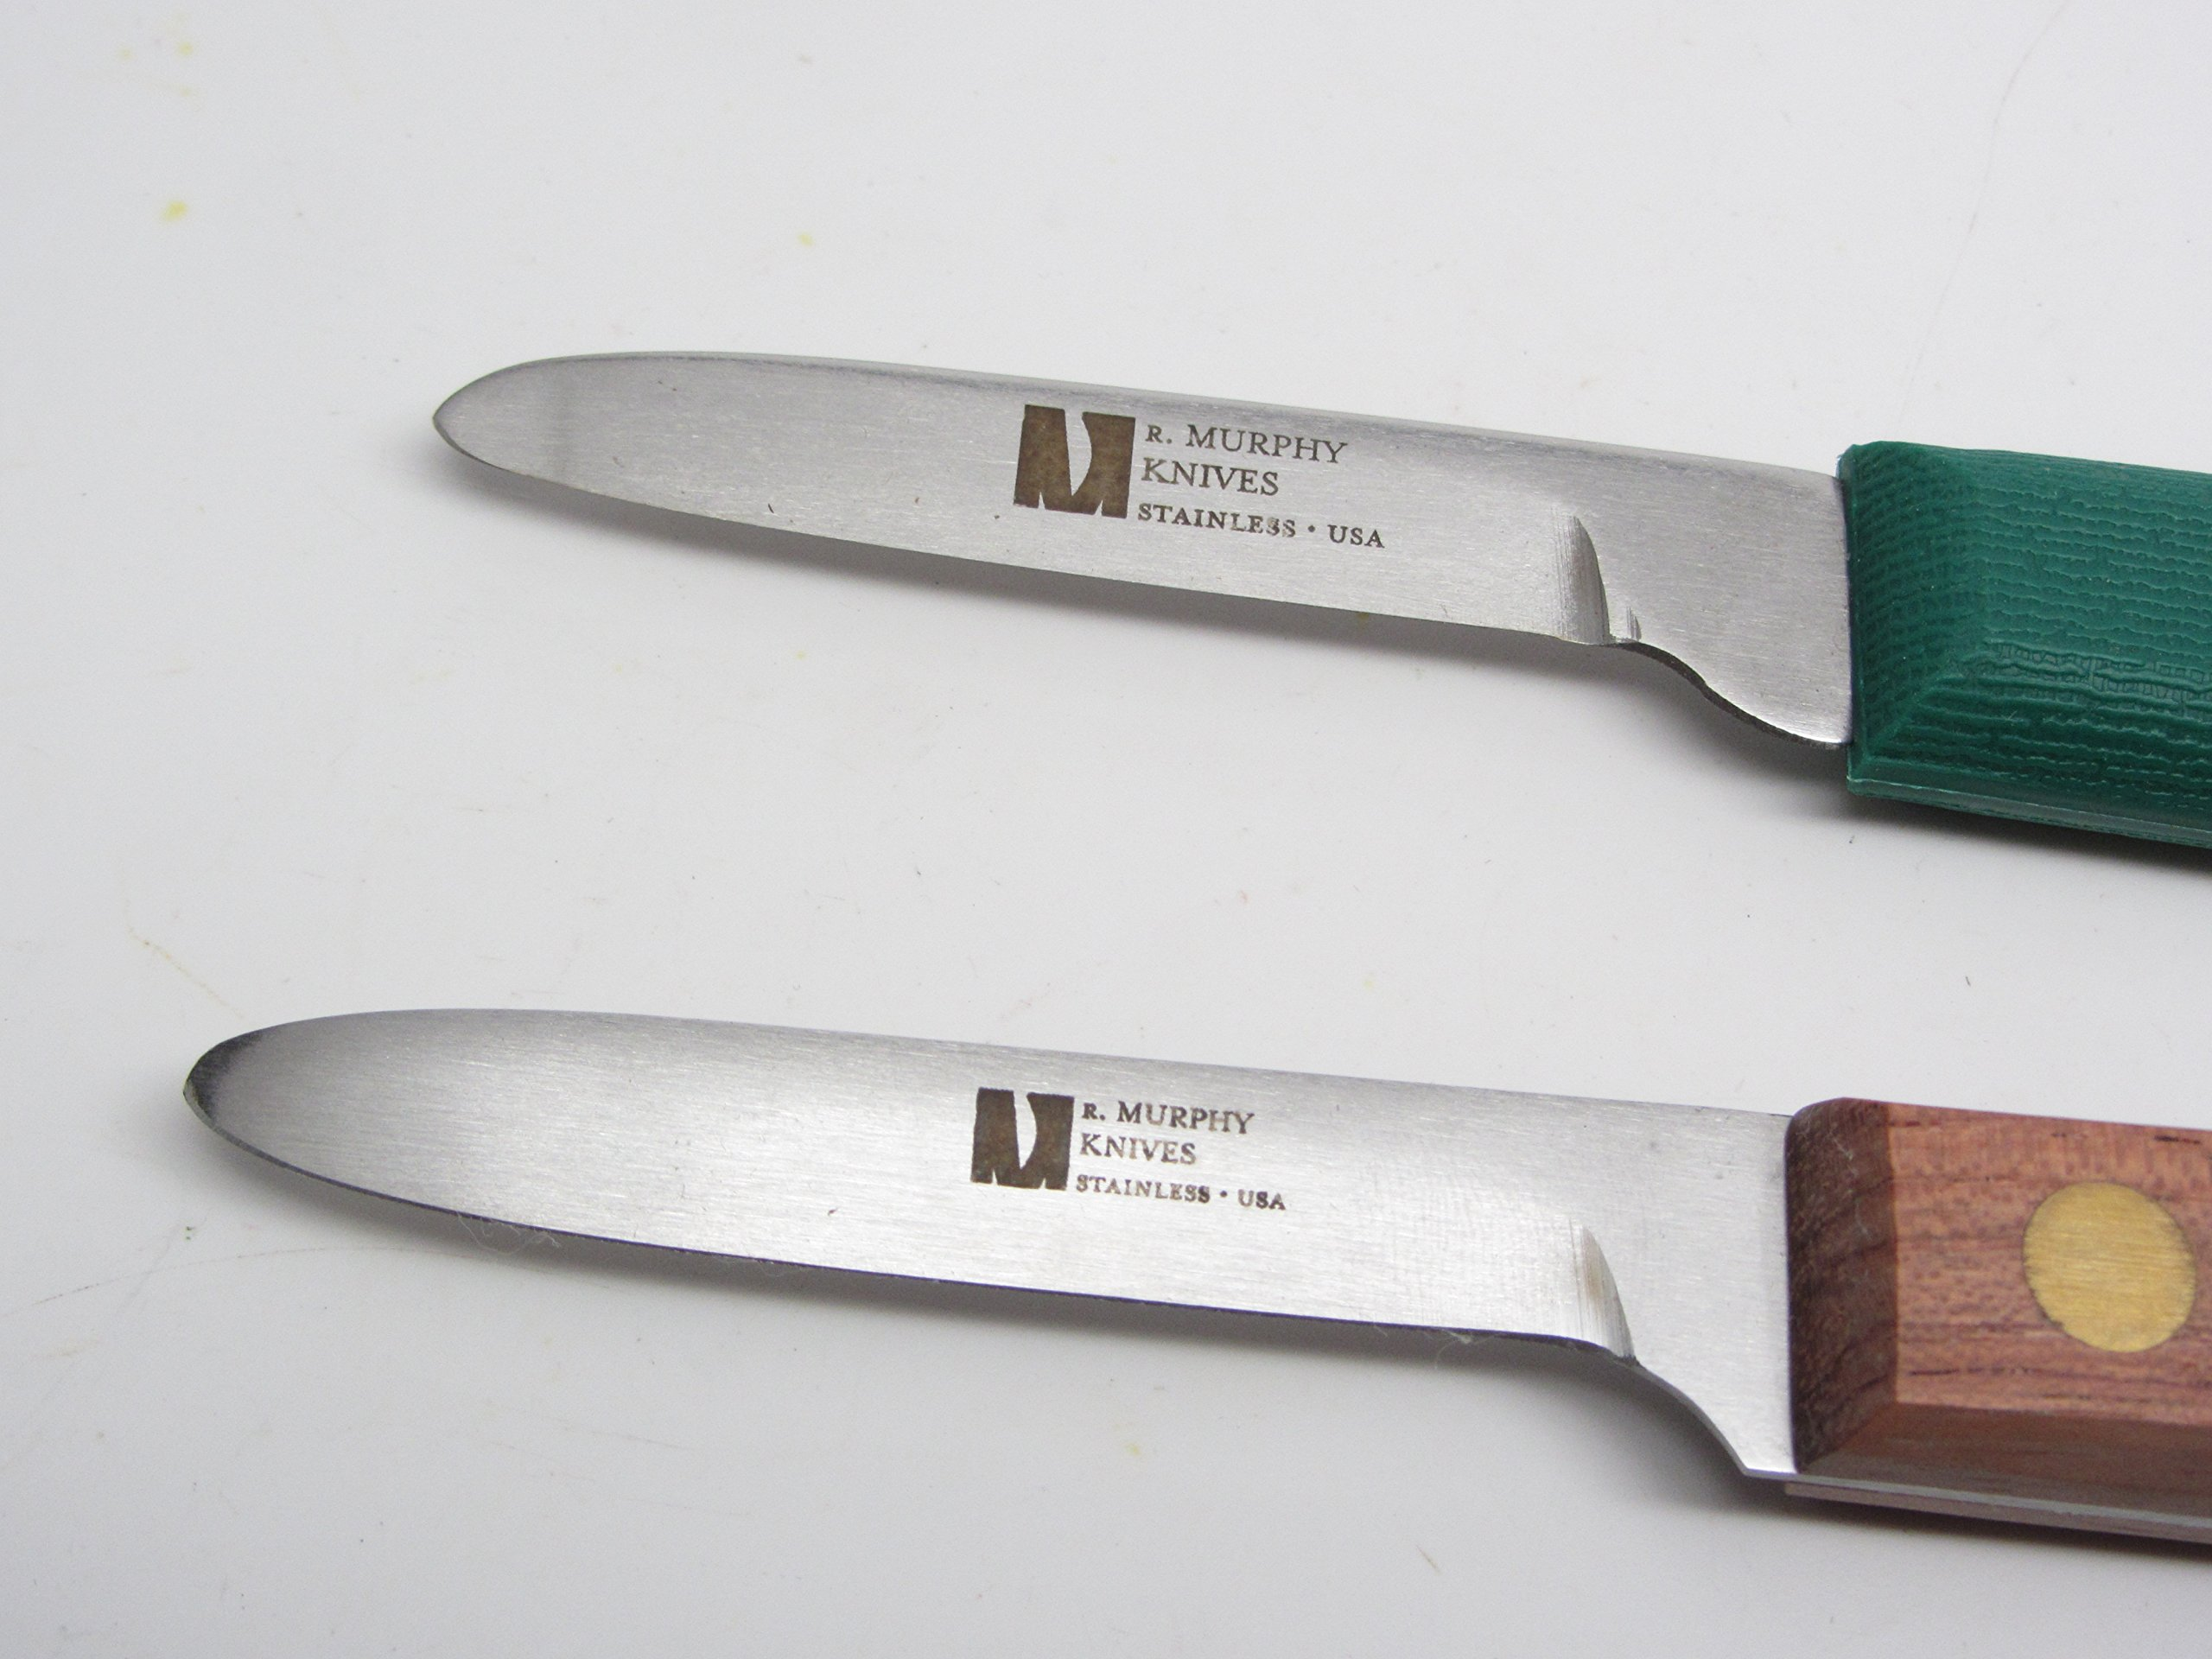 2 R Murphy Shellfish Little Neck Clam Knife Seafood Tools Poly & Wood Handle by UJ Ramelson Co